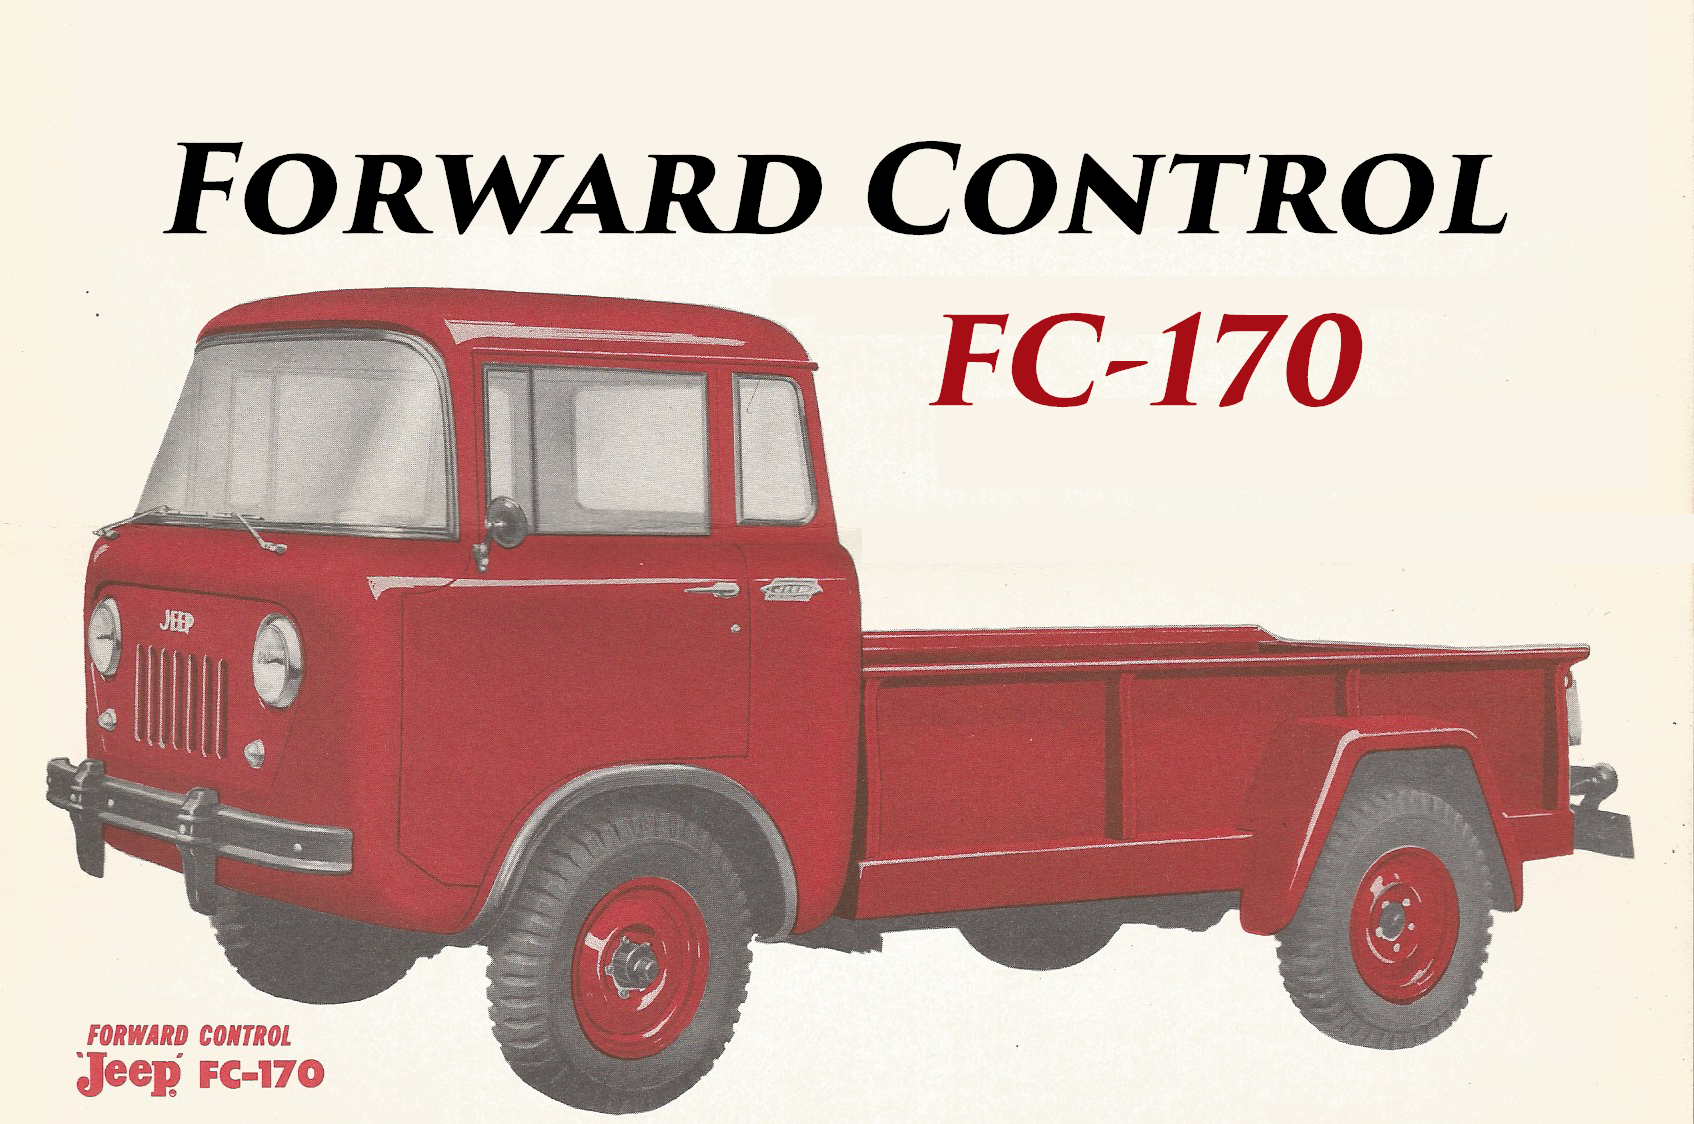 Jeep Model FC-170 and Specifications